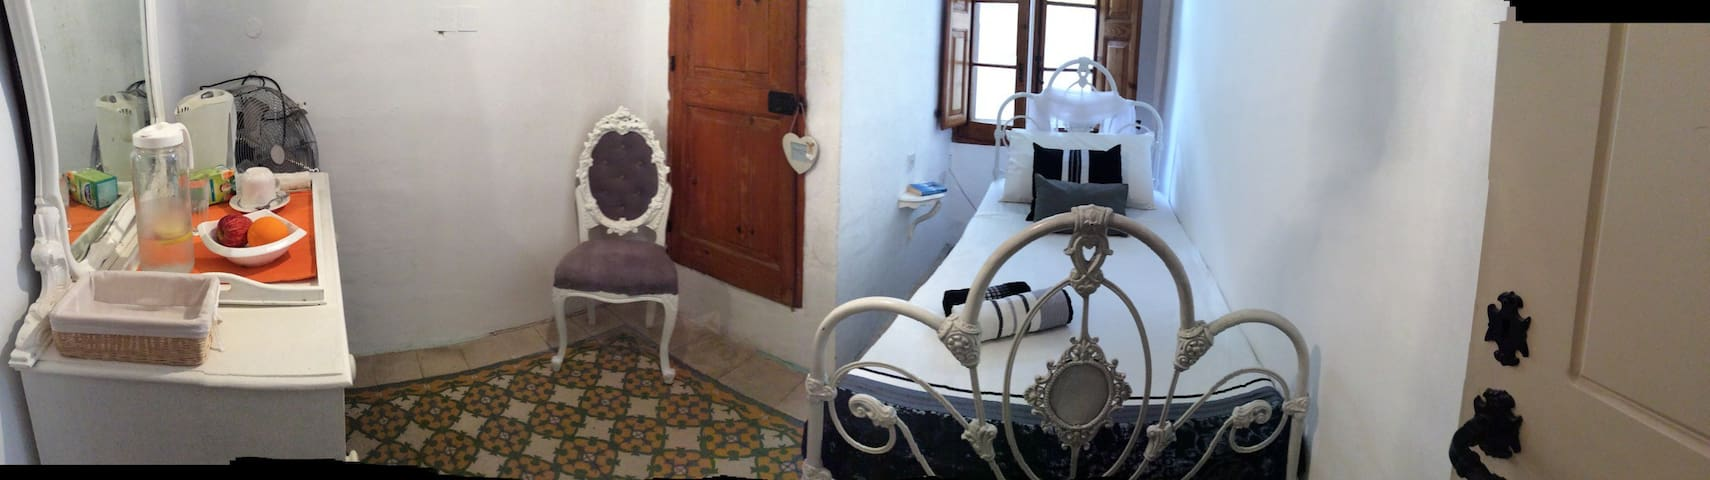 Cosy refuge for one! - Il-Gżira - Hus